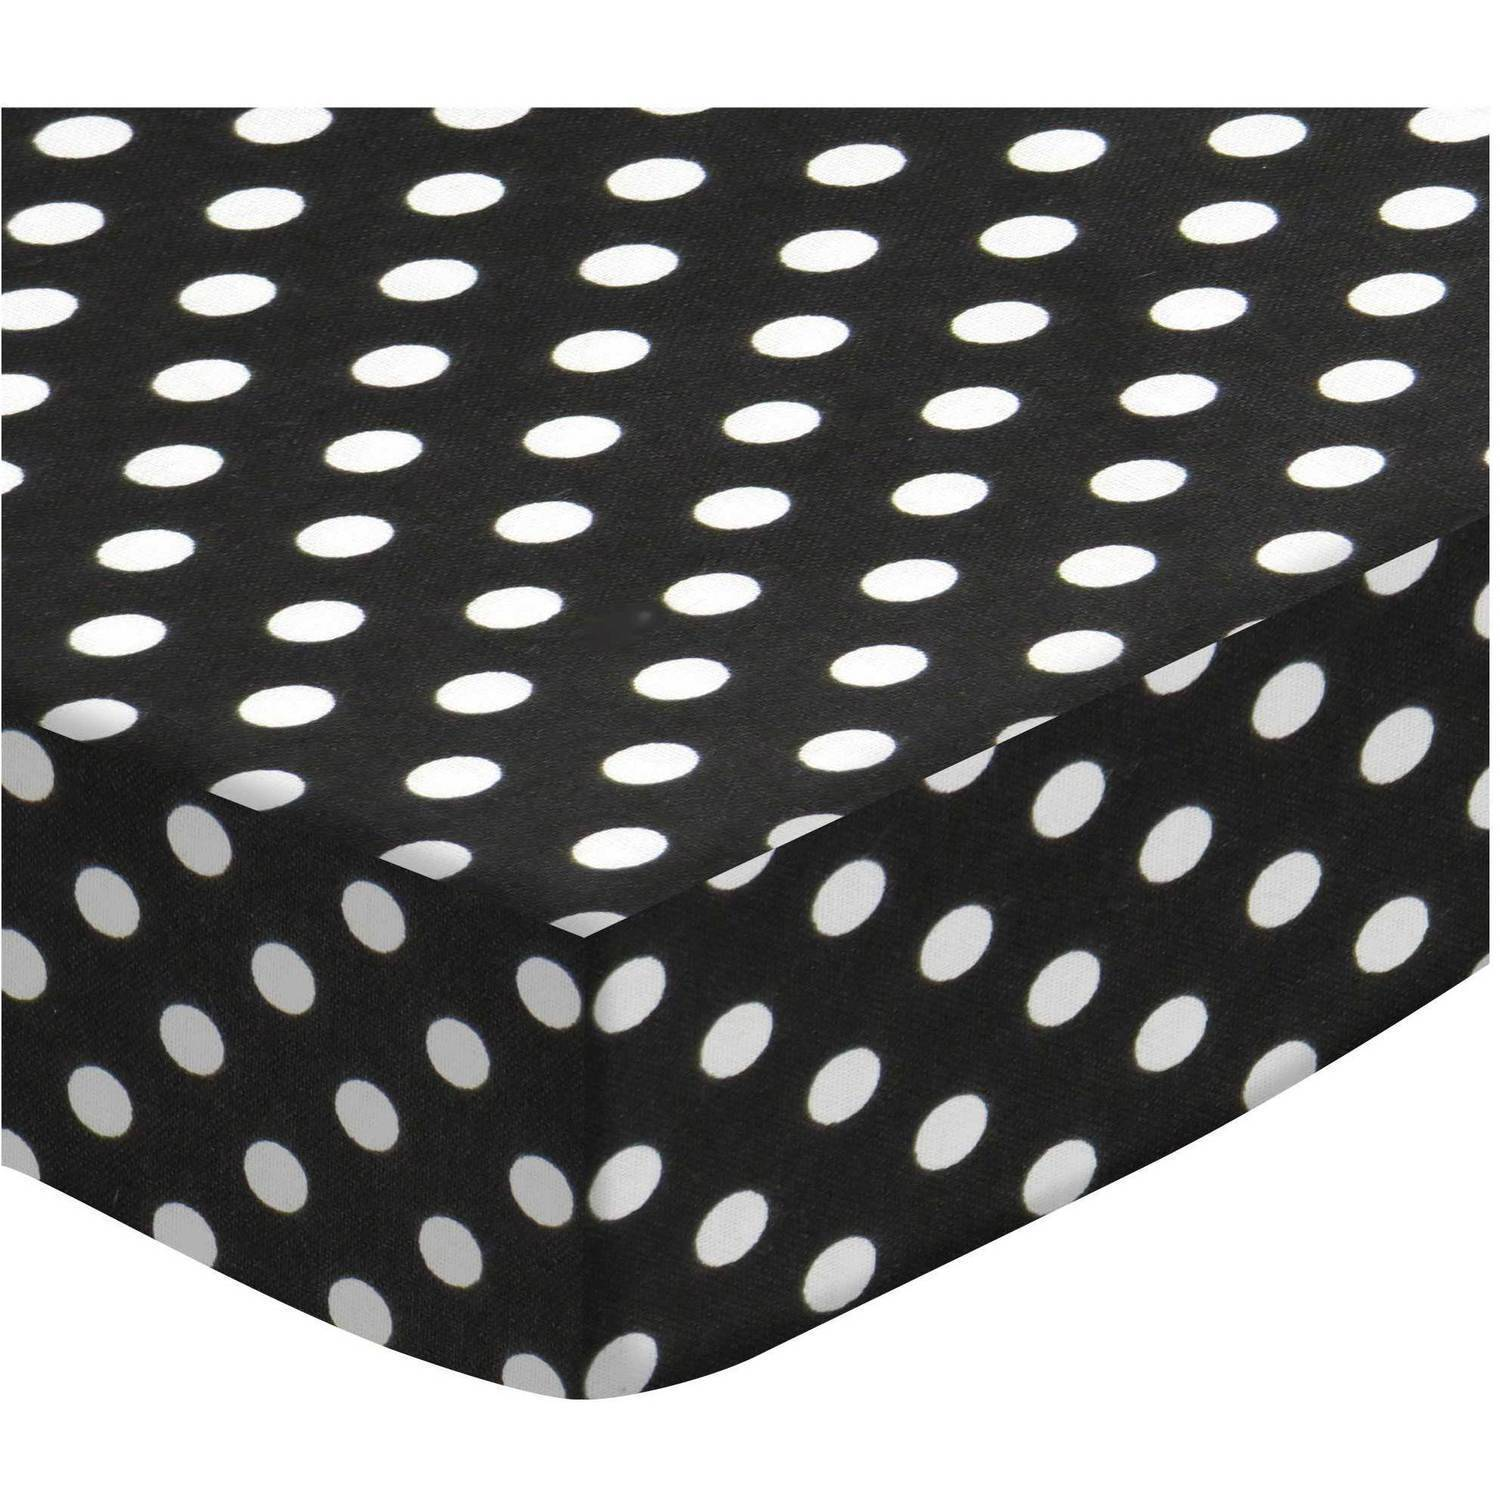 SheetWorld Fitted Oval (Stokke Mini) - Primary Polka Dots Black Woven